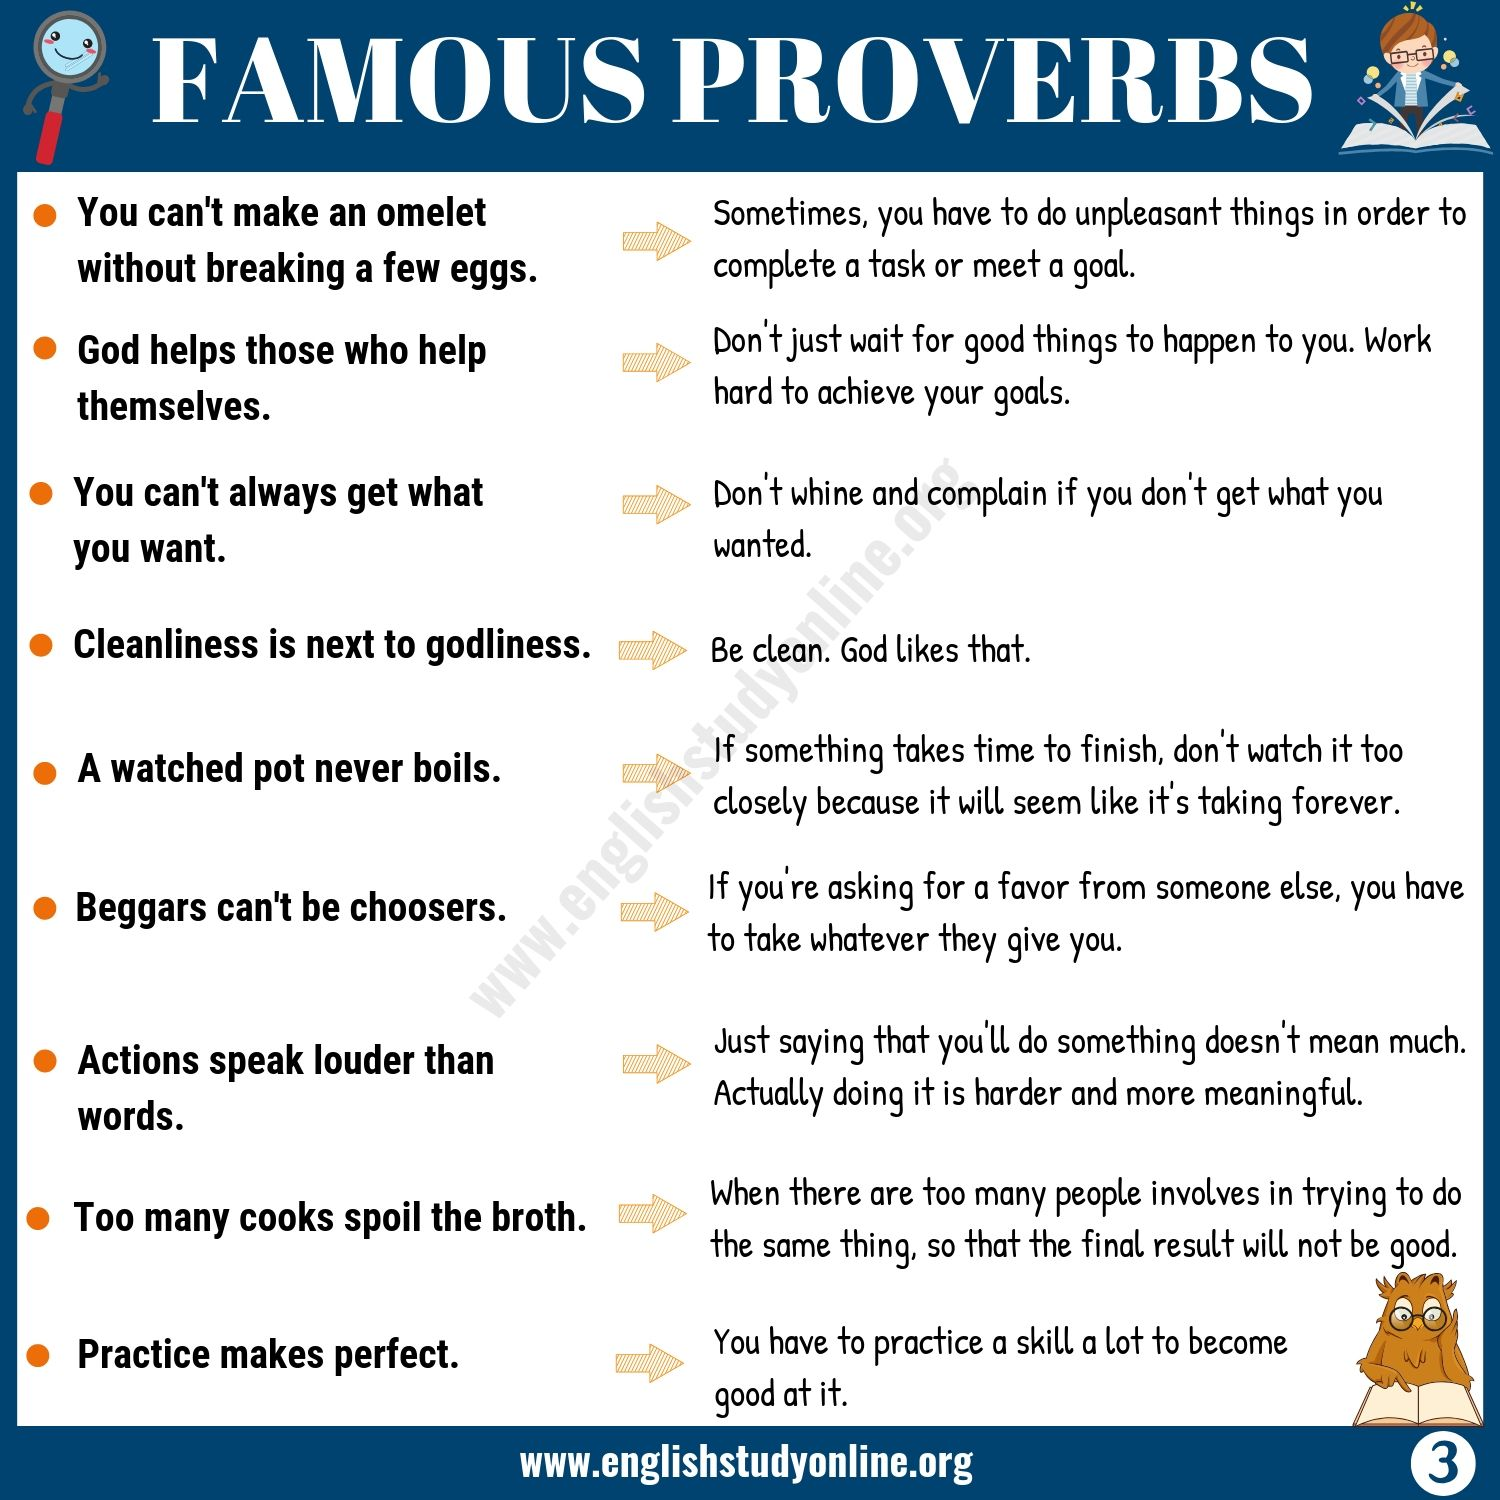 An Arm And A Leg Idiom Meaning In Urdu 45 Famous Proverbs With Meaning For Esl Learners English Study Online Proverb With Meaning Proverbs English English Study